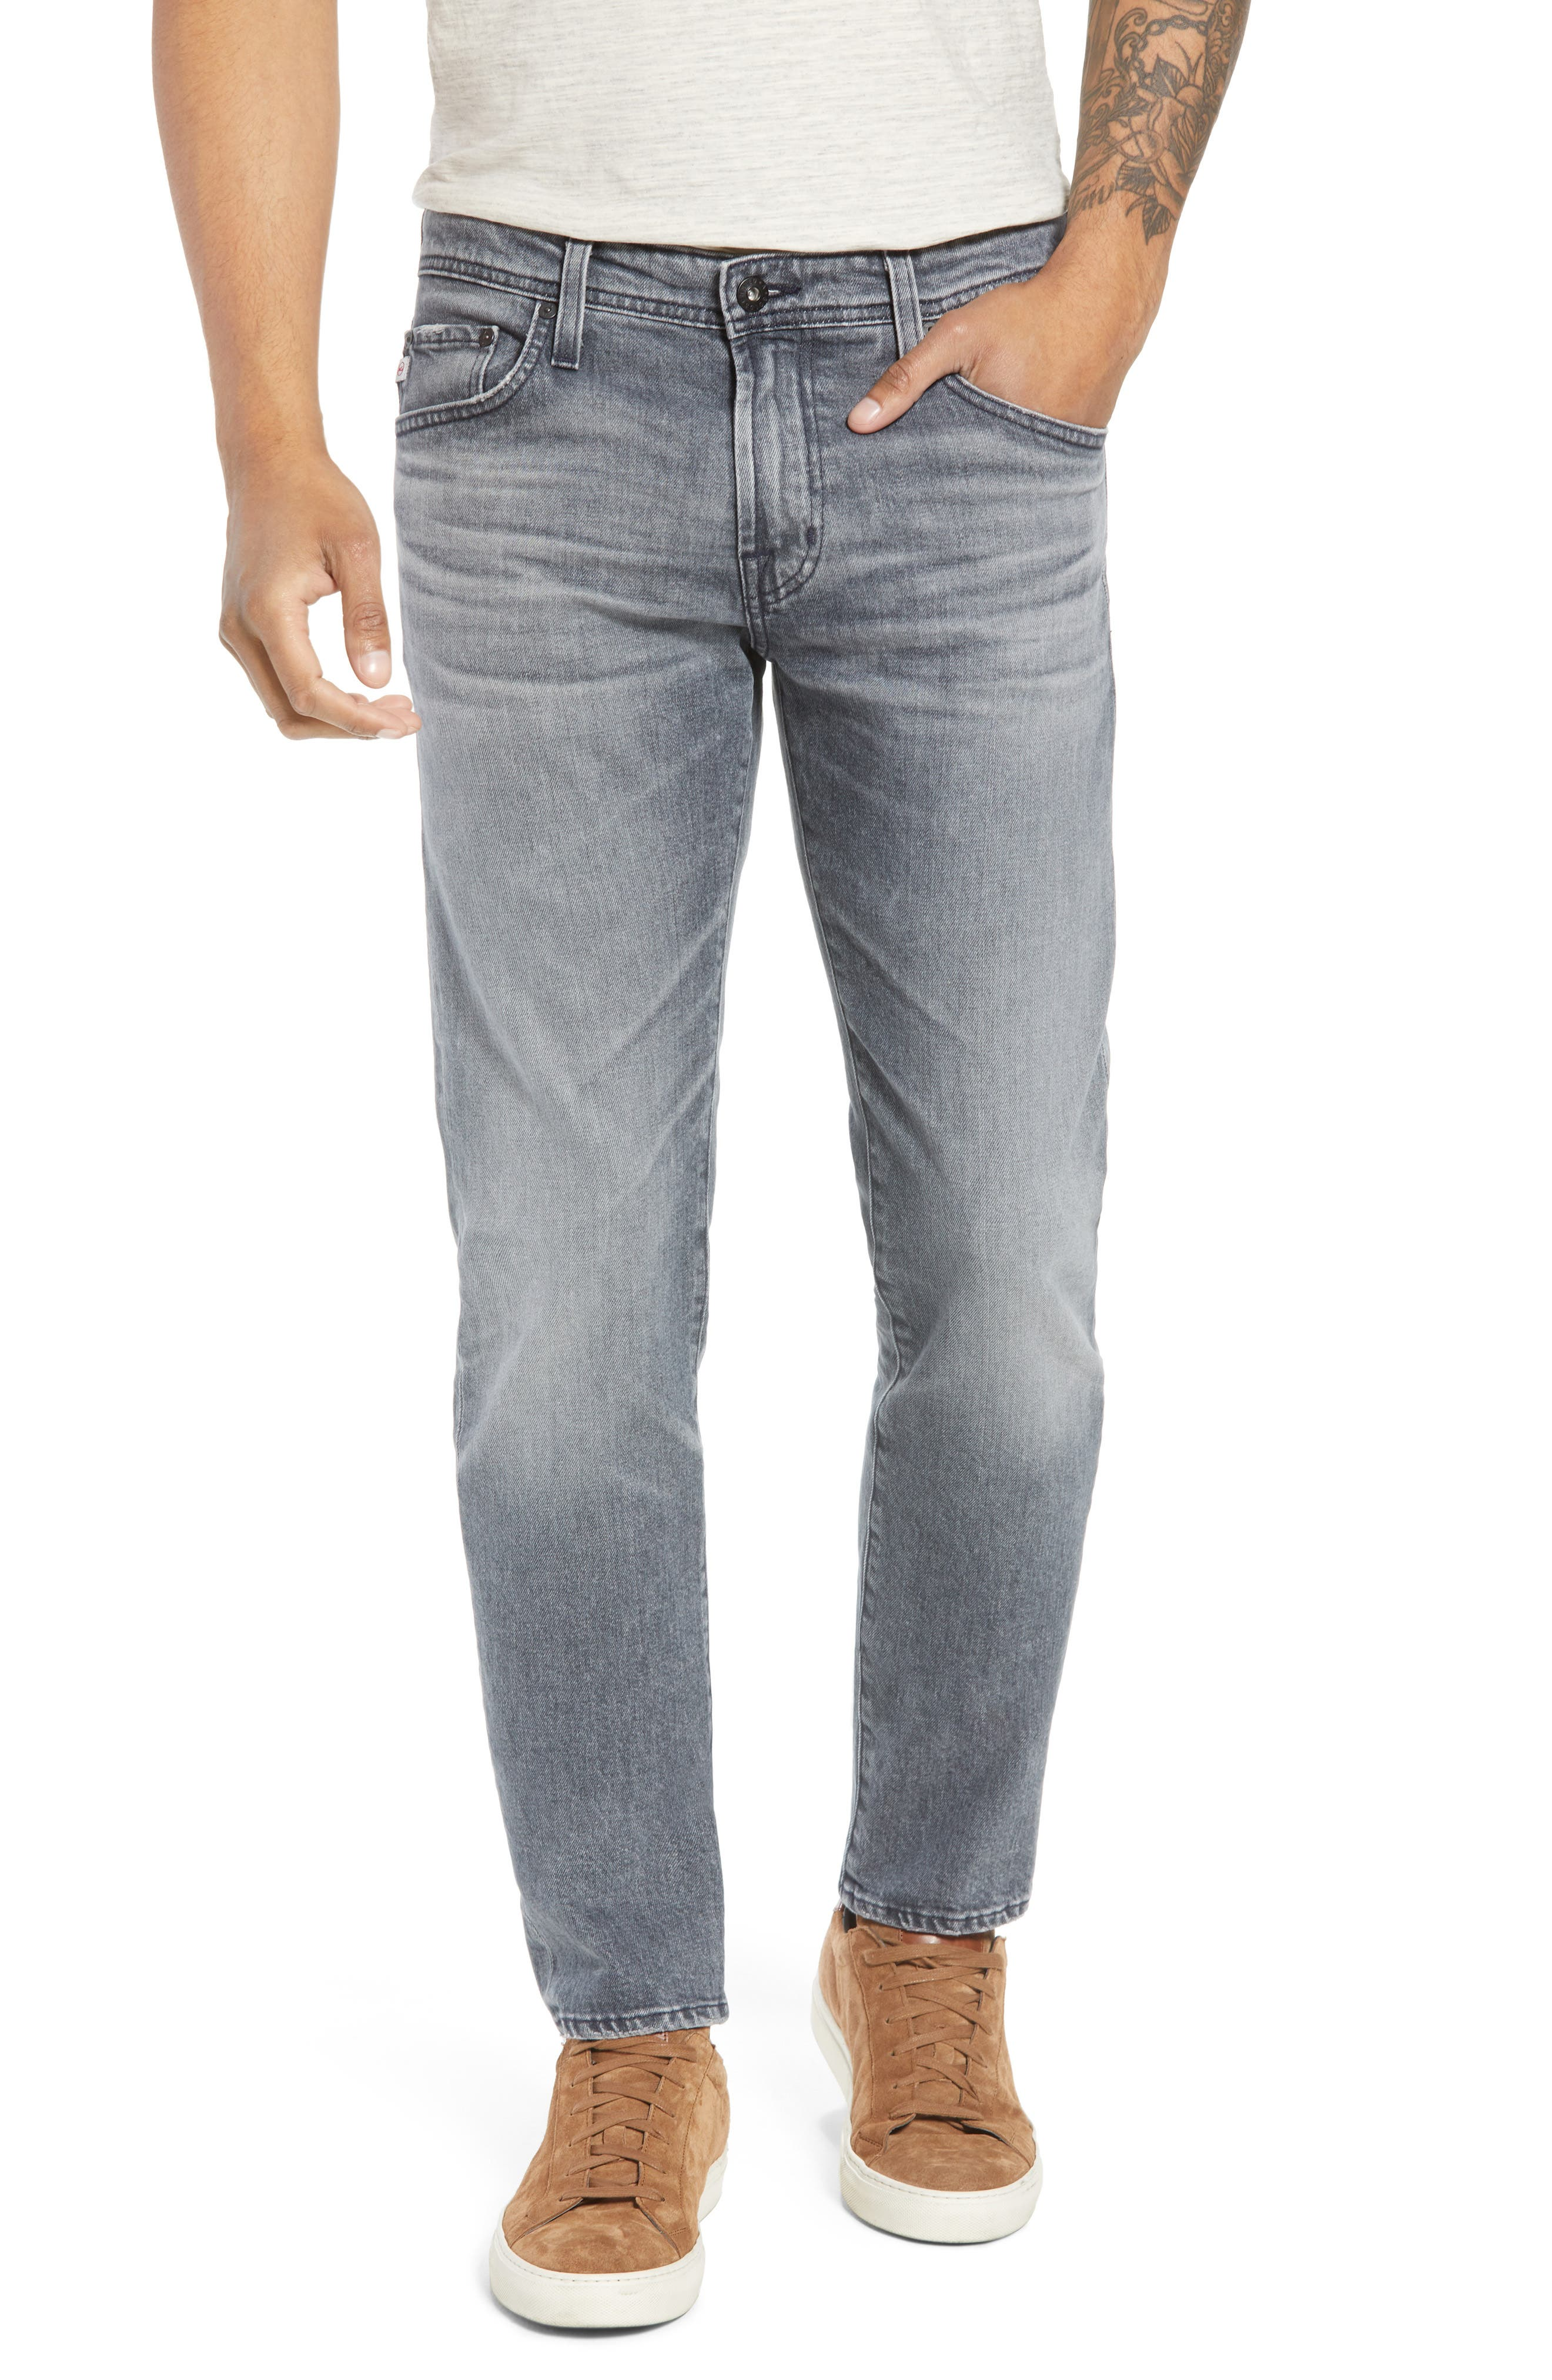 Tellis Slim Fit Jeans,                         Main,                         color, 020